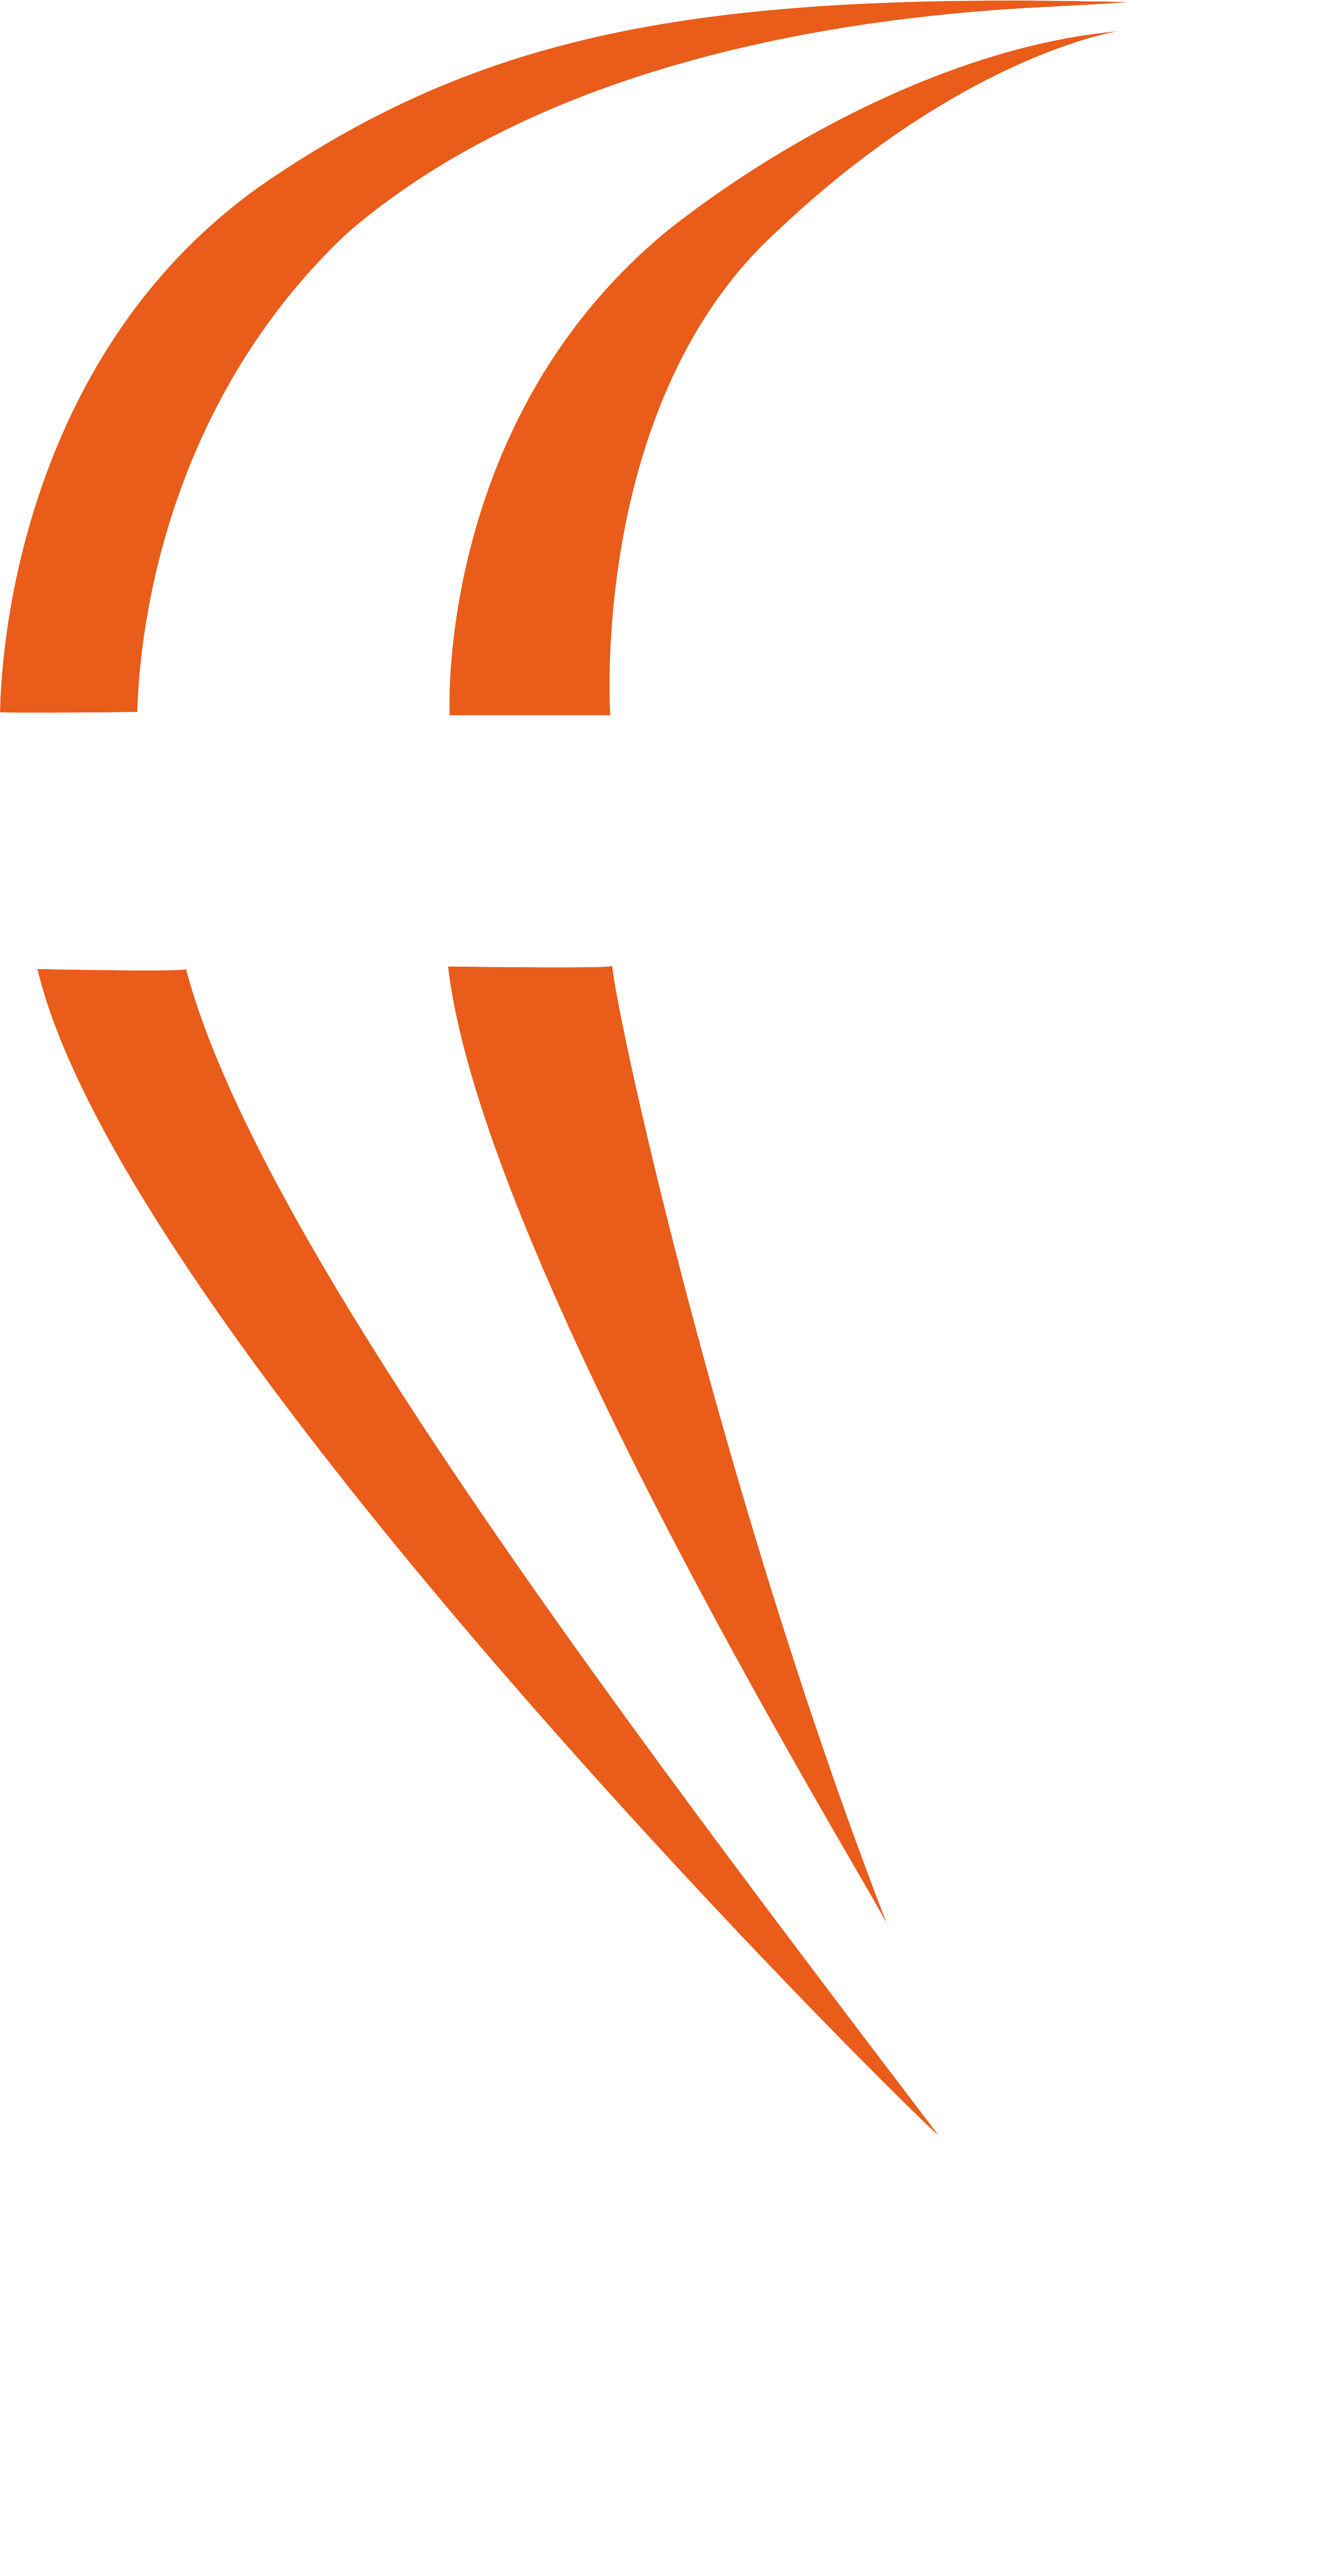 Aeroballonsport